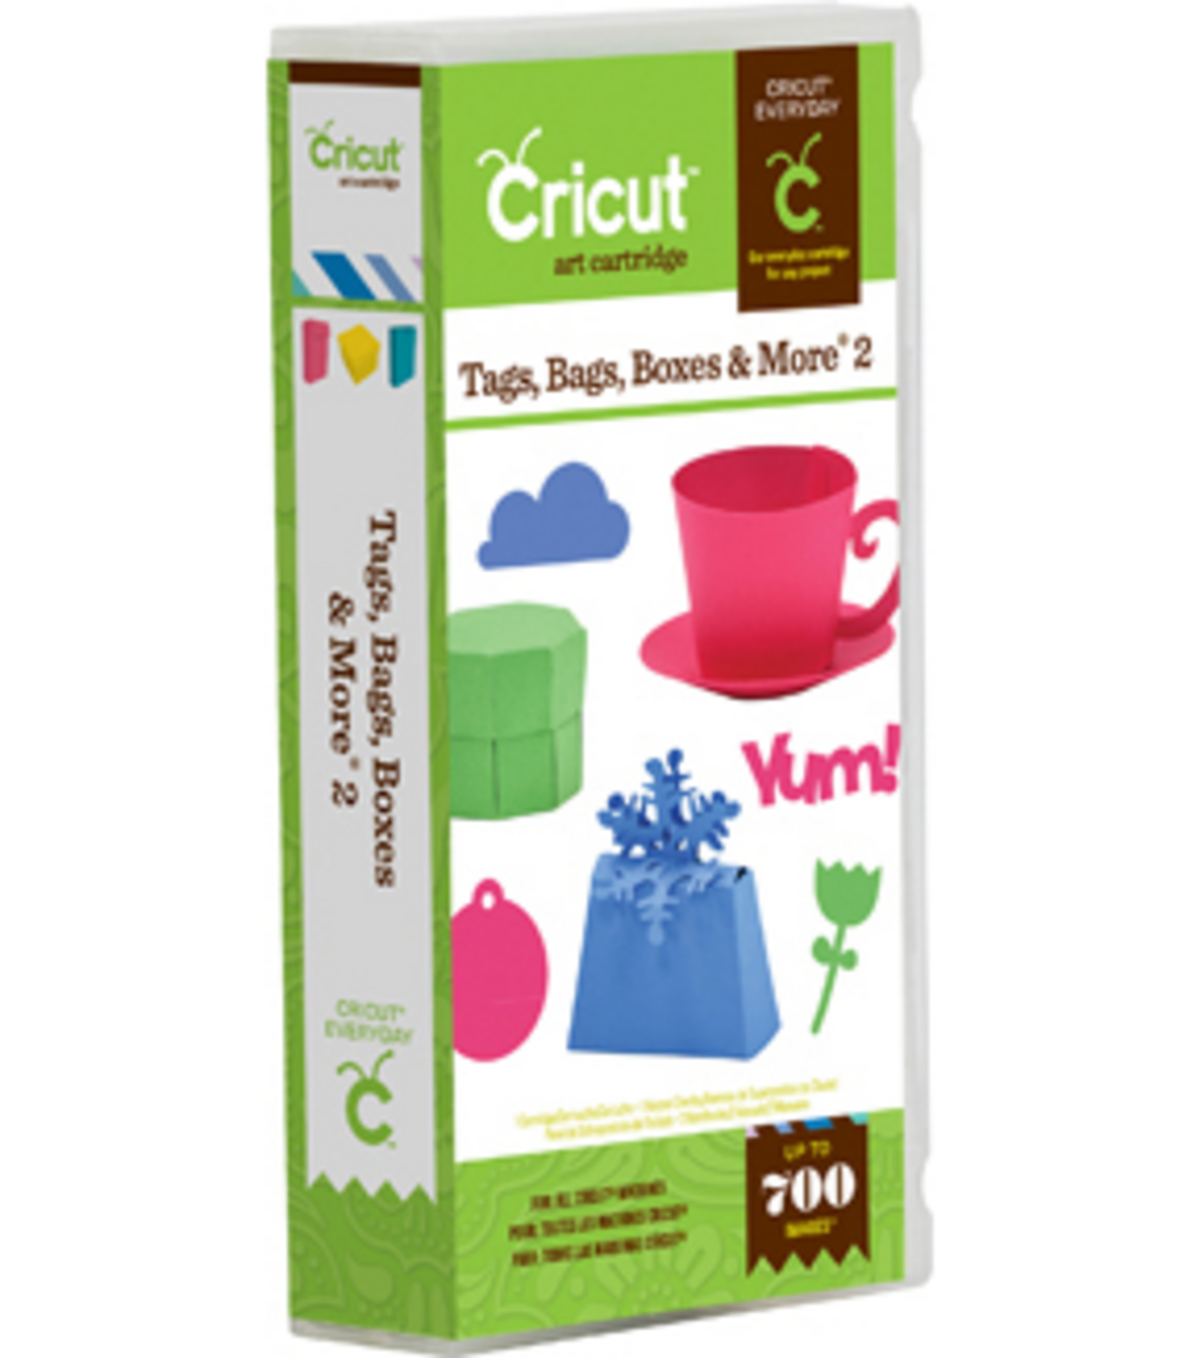 Cricut® Everyday Cartridge-Tags, Bags, Boxes & More 2